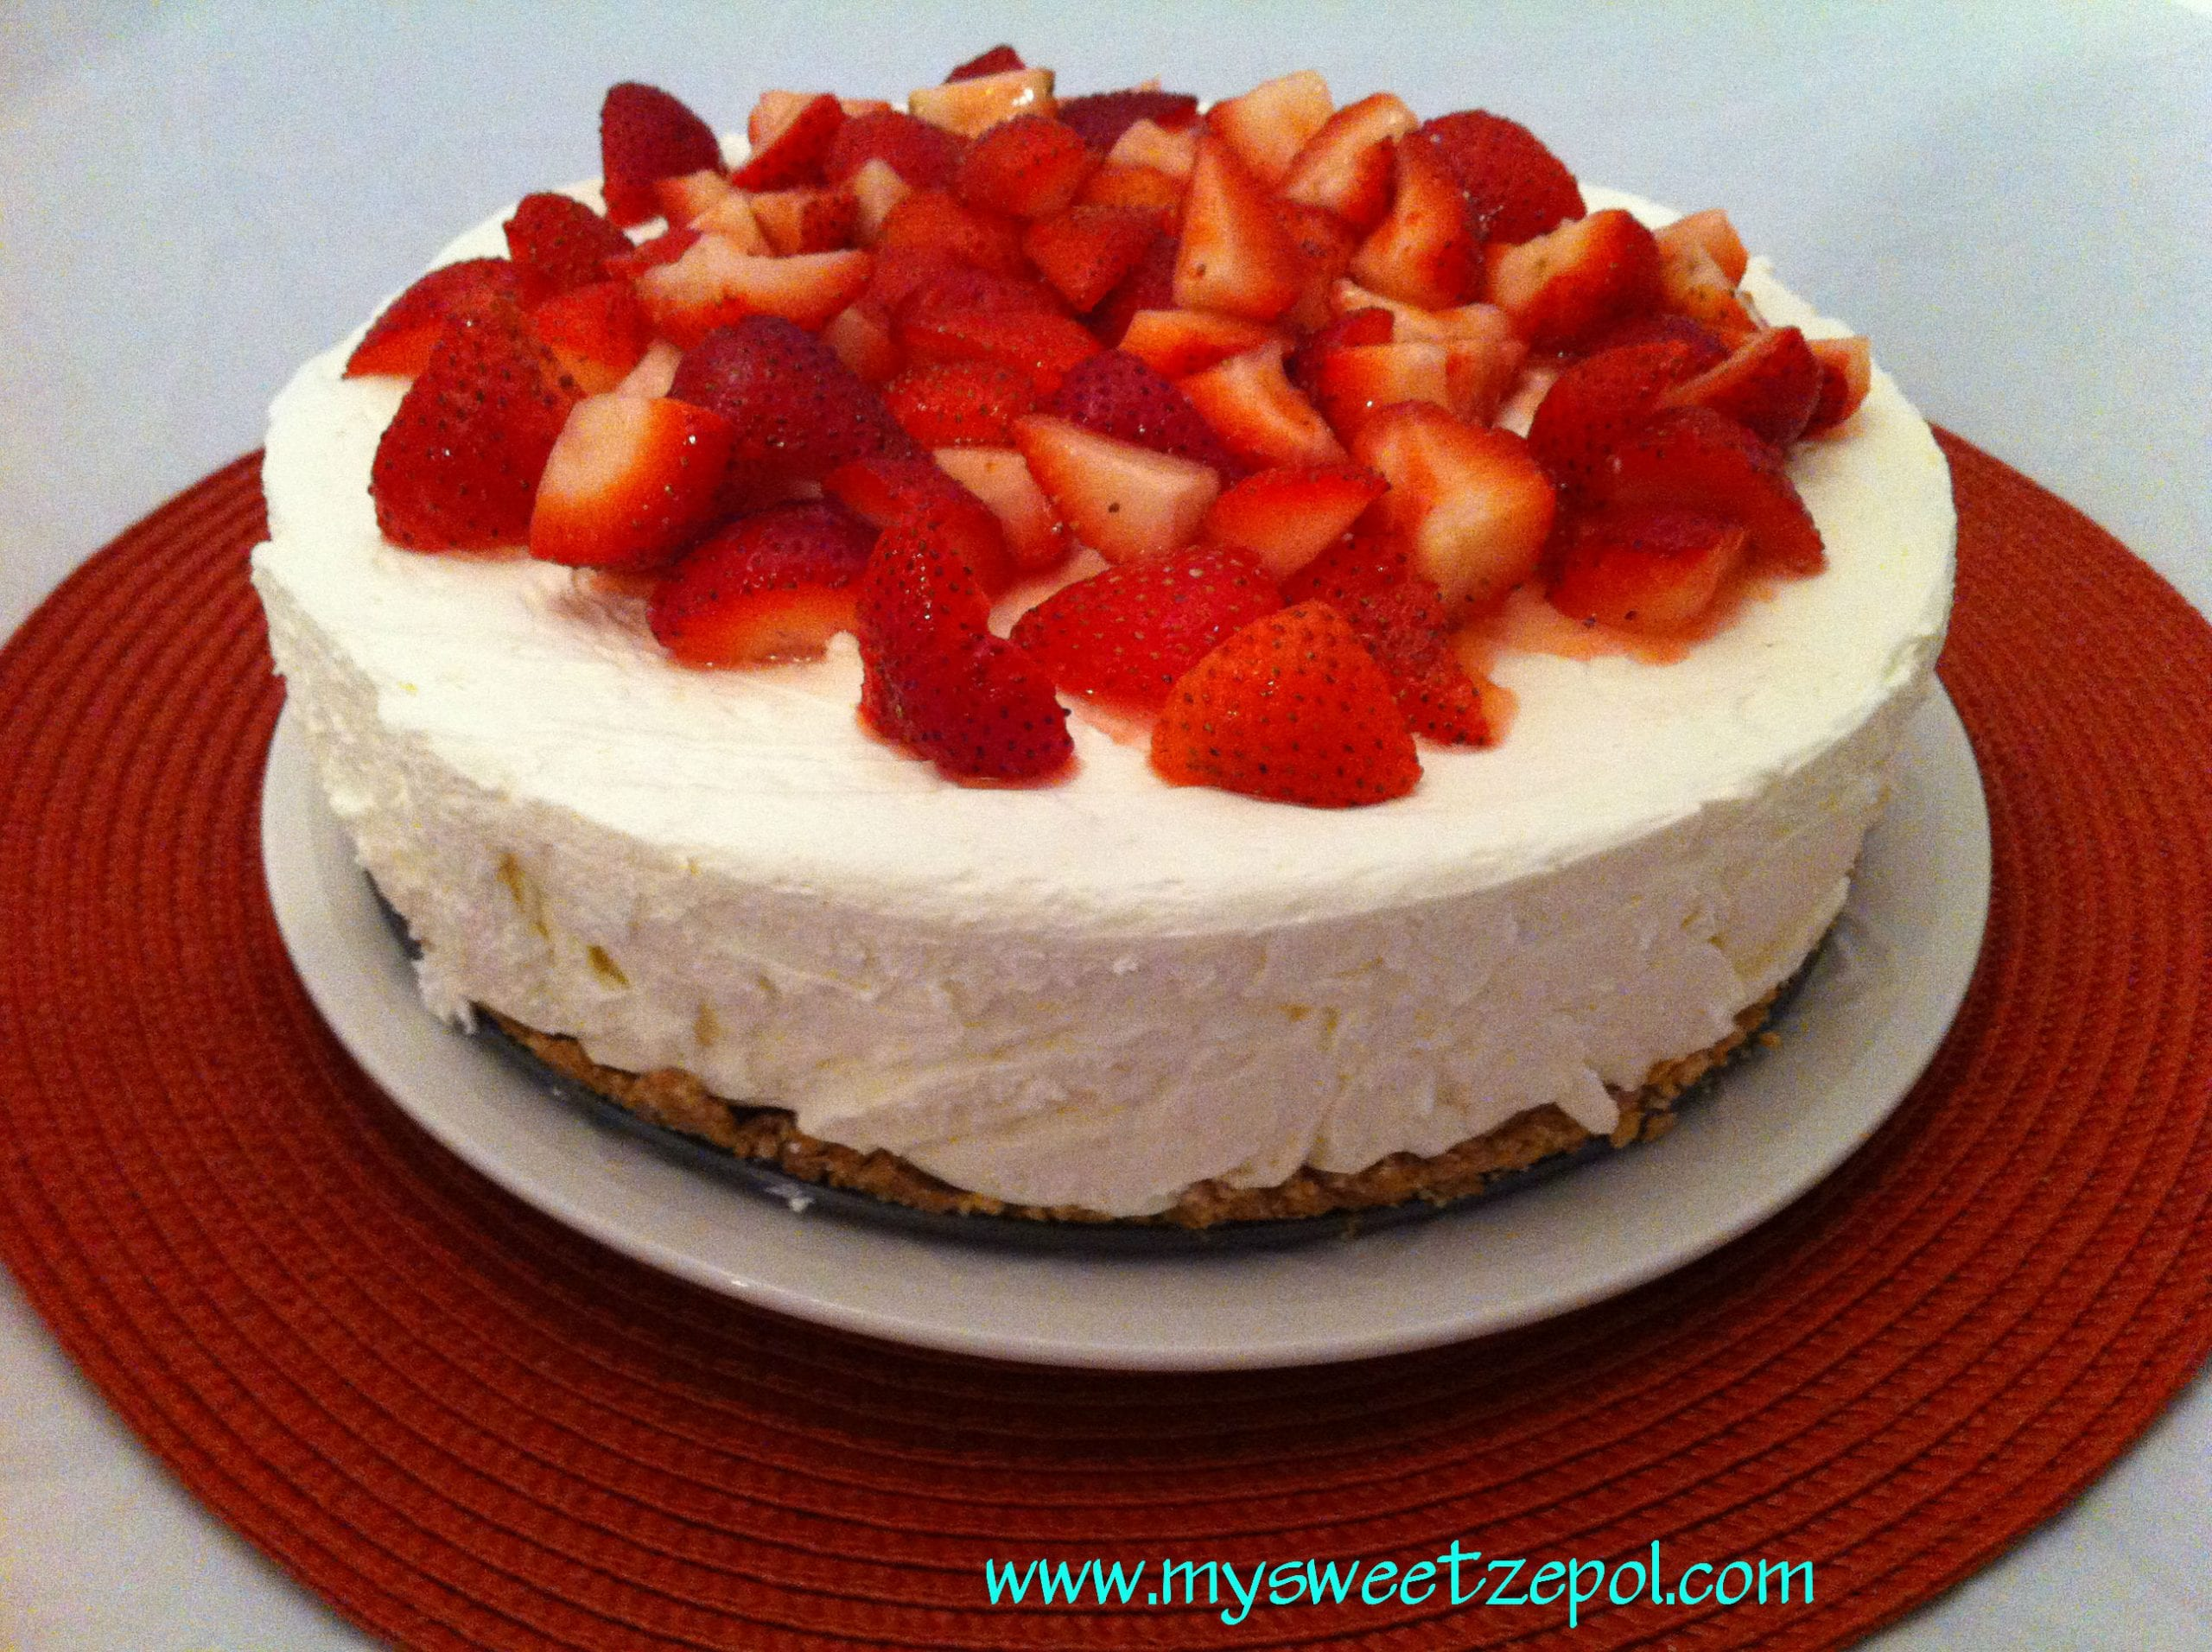 ... Sweet Zepol » No Bake Cheesecake with Strawberries and biscoff crust